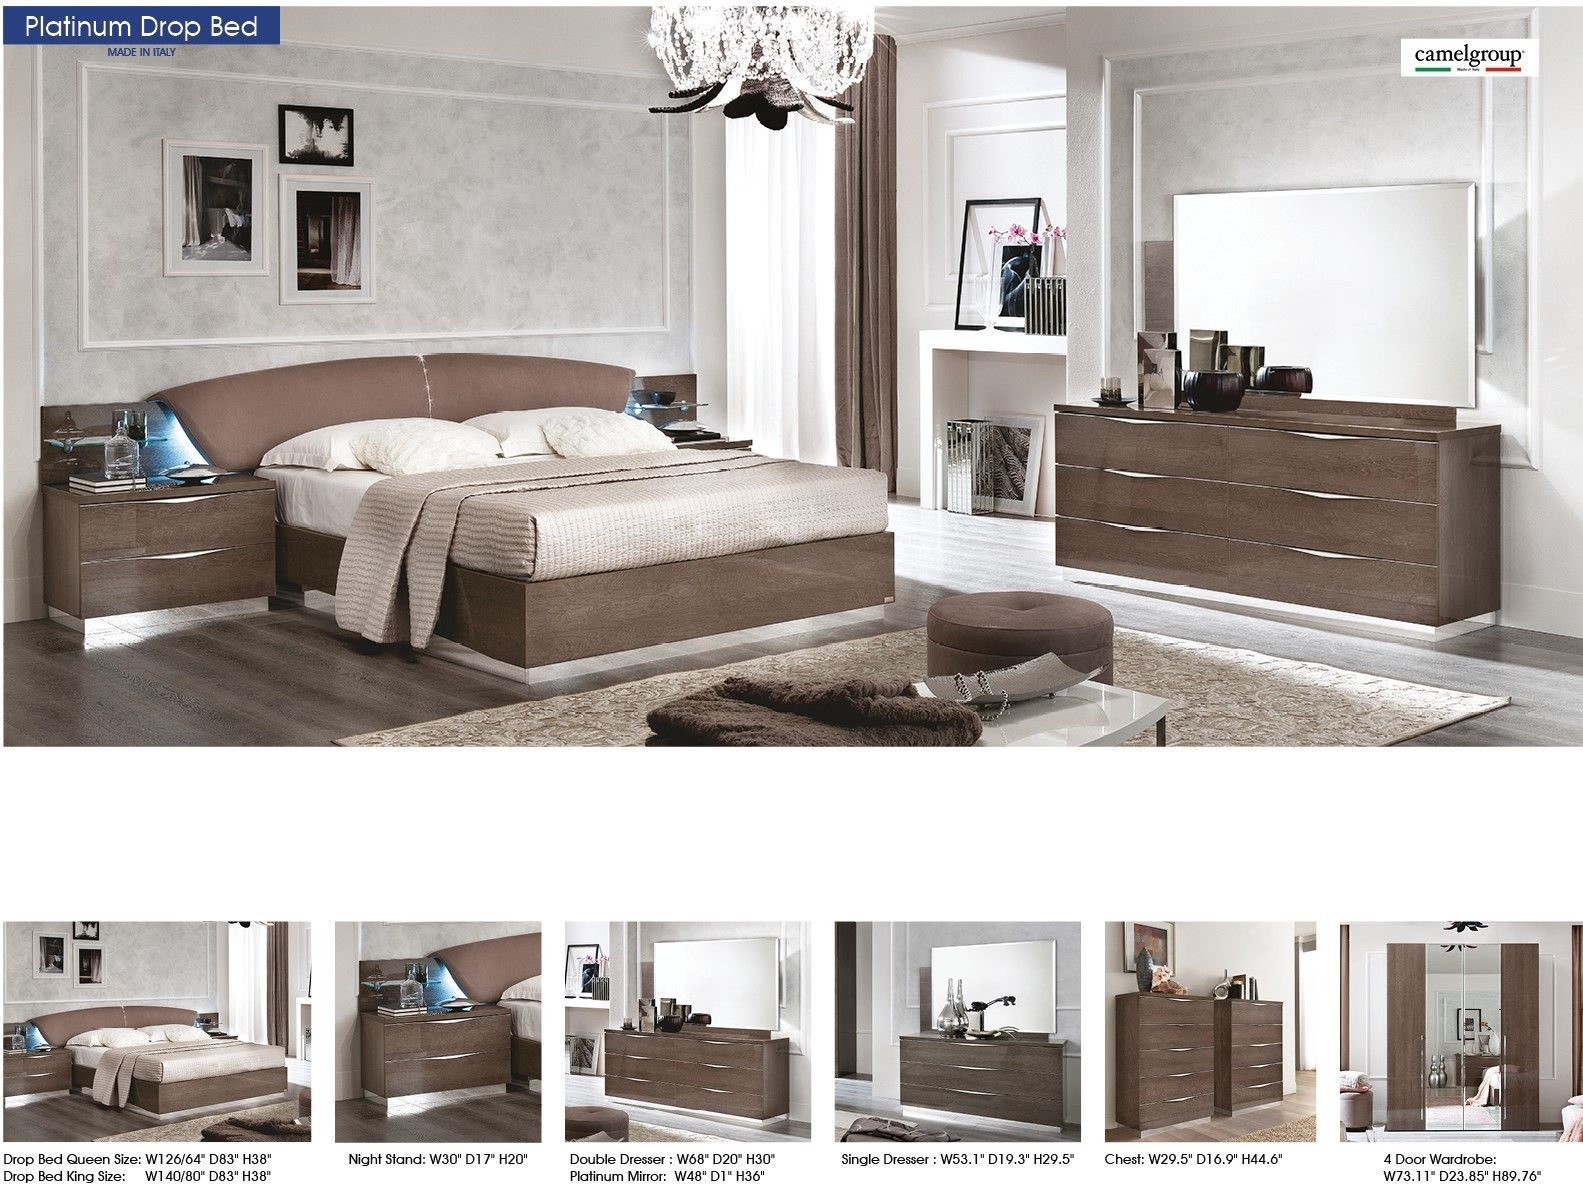 ESF Platinum Drop King Size Bedroom Set 5pc. Chic Contemporary Modern Style